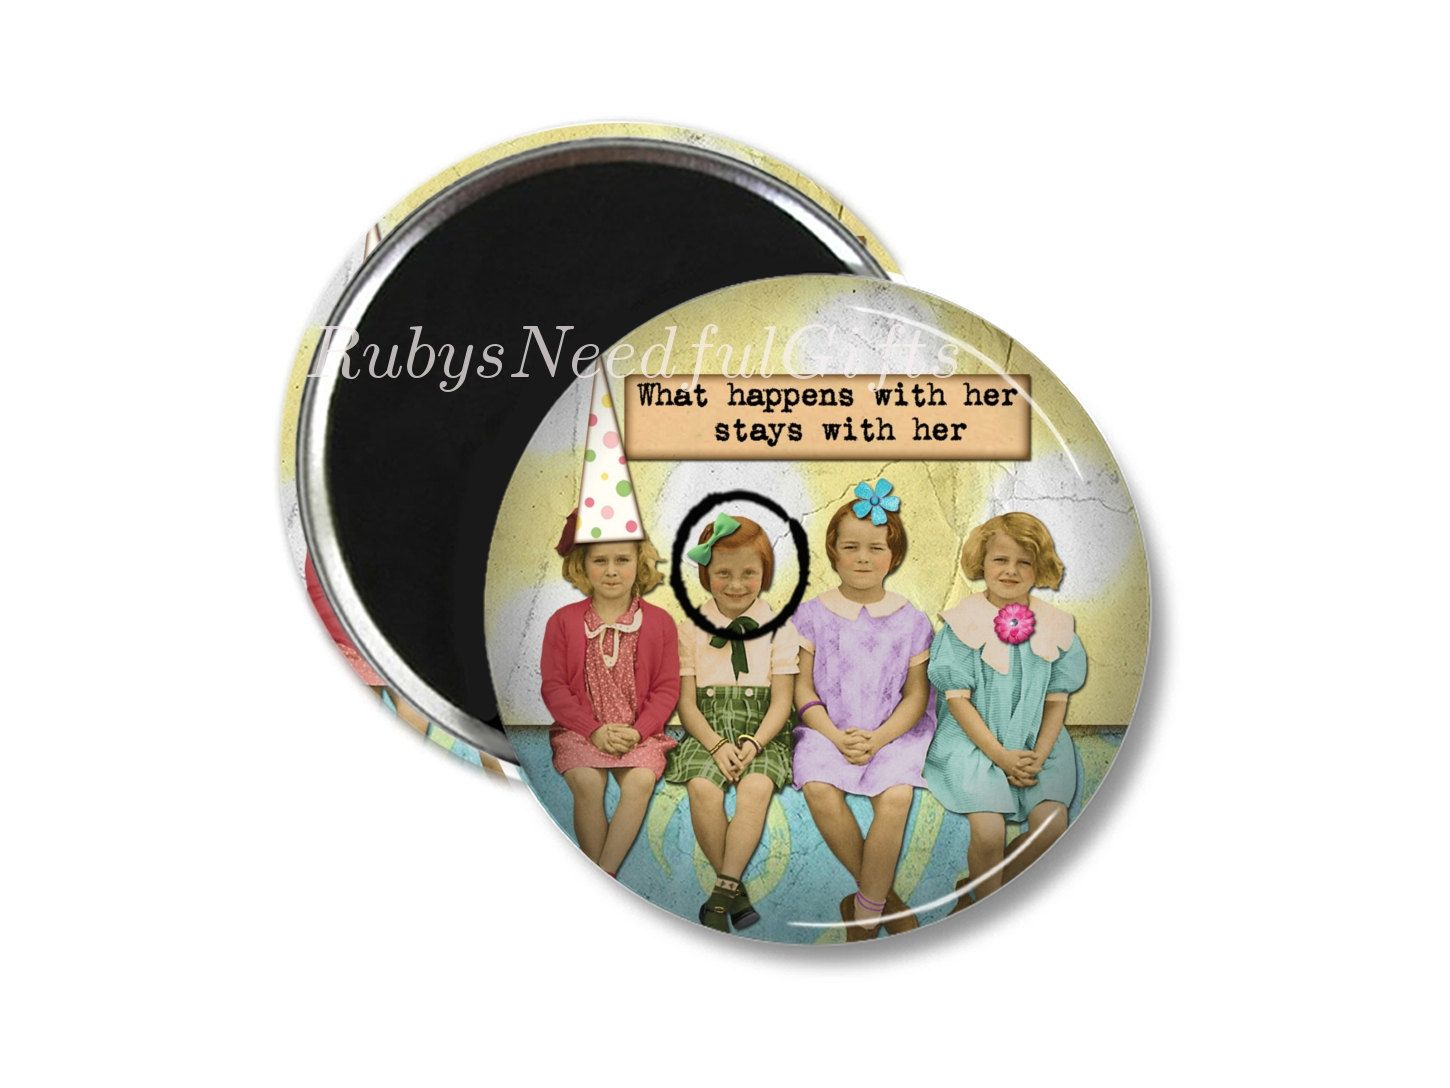 Retro Friends Magnet,  2.25 inch Magnet,  Birthday gift, fridge magnet,  Gifts under a Fiver,  Button Magnet, What Happens. by RubysNeedfulGifts on Etsy